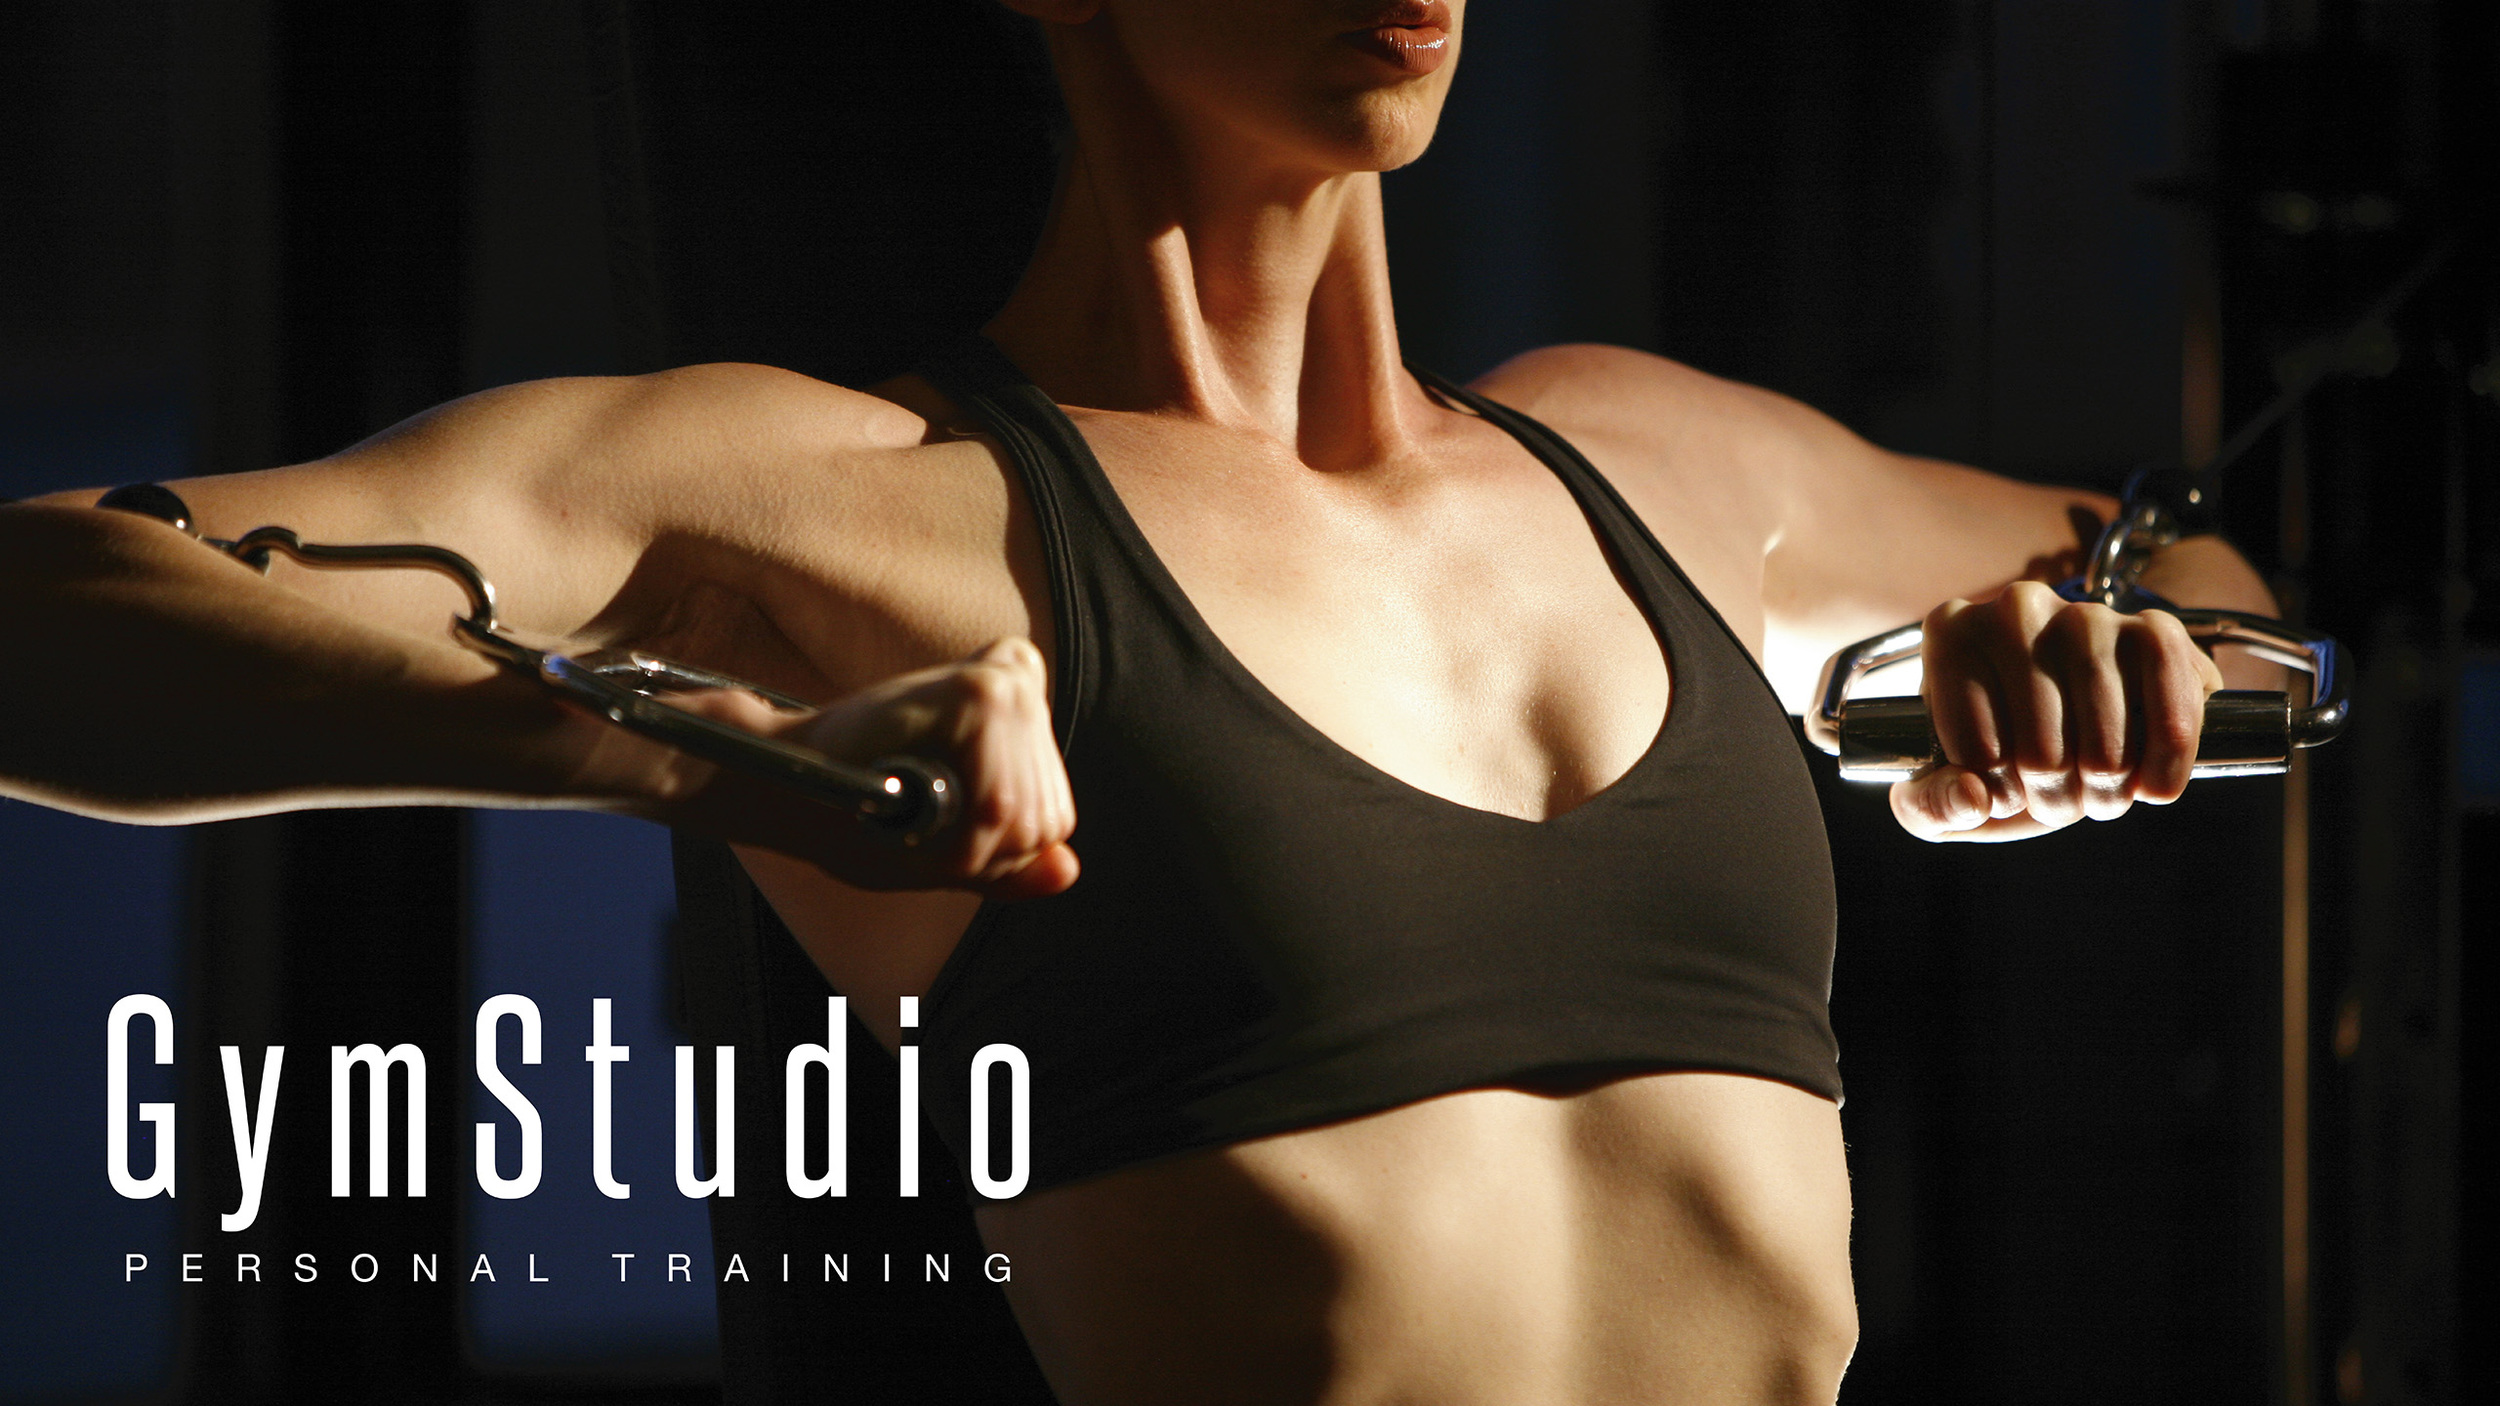 GymStudio Personal Training